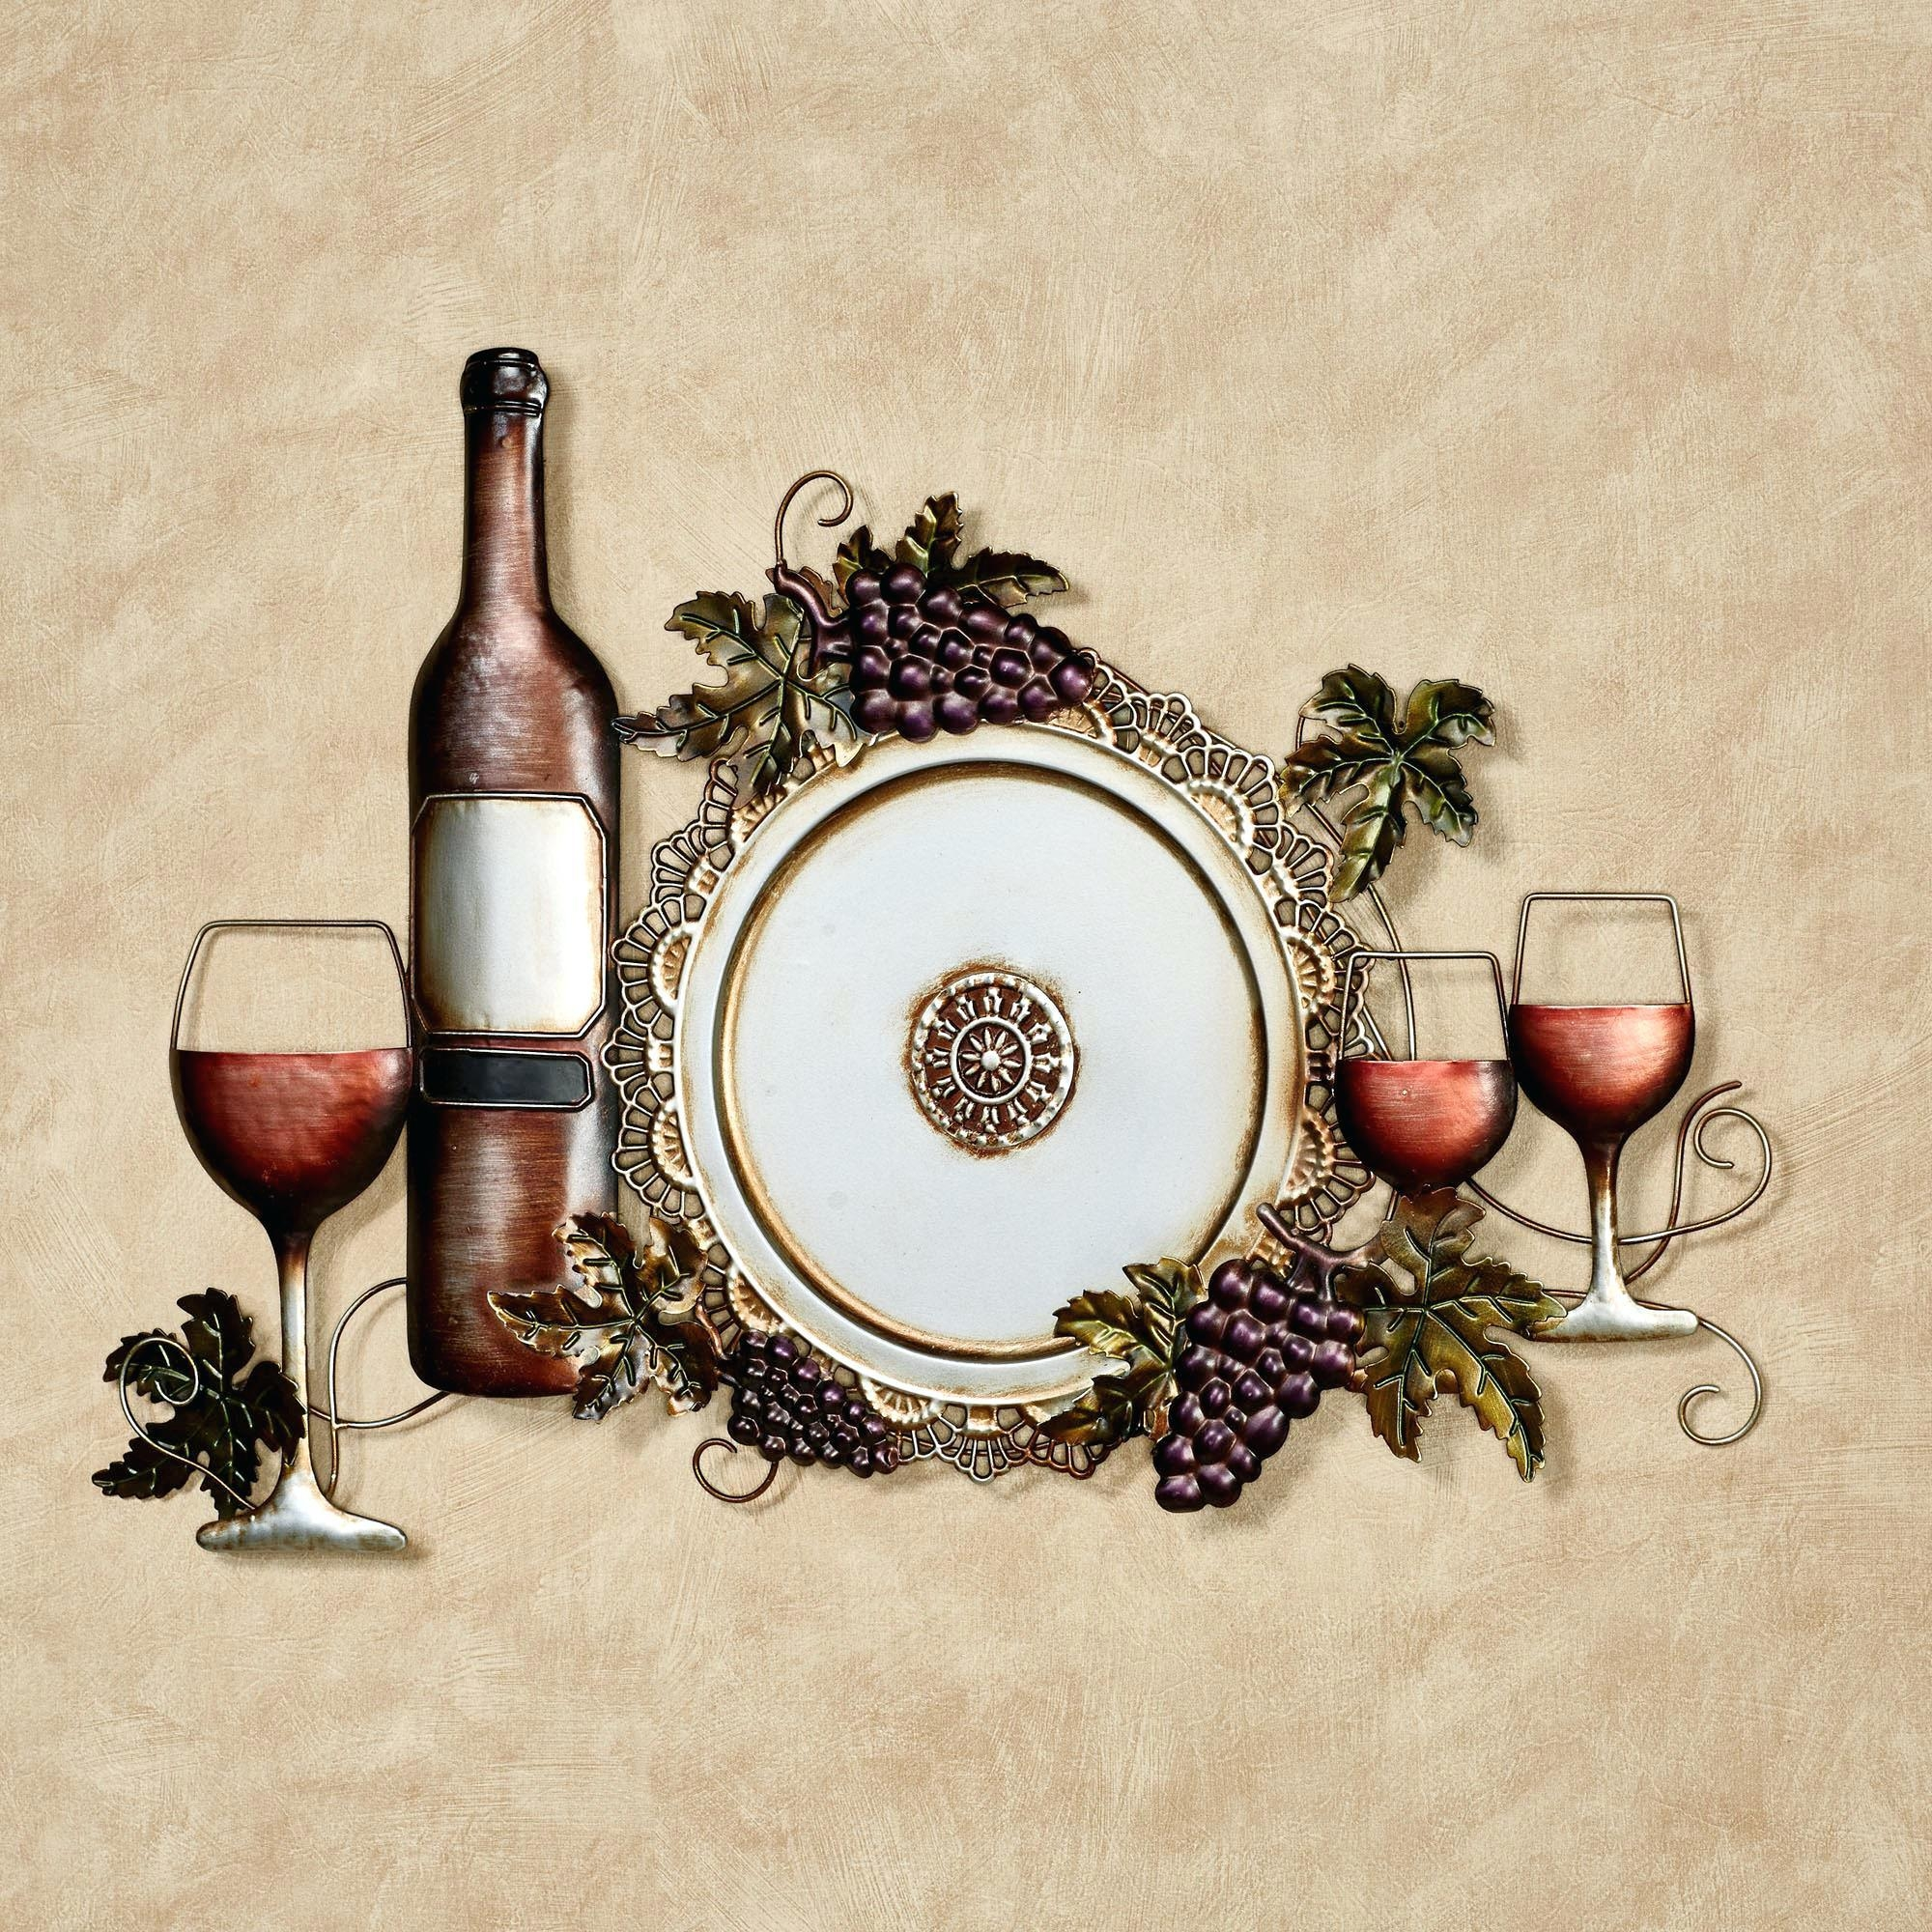 Wall Ideas : Framed Wine Wall Art Wall Decor Wine Cork Wall Art With Grape Vineyard Wall Art (View 10 of 20)